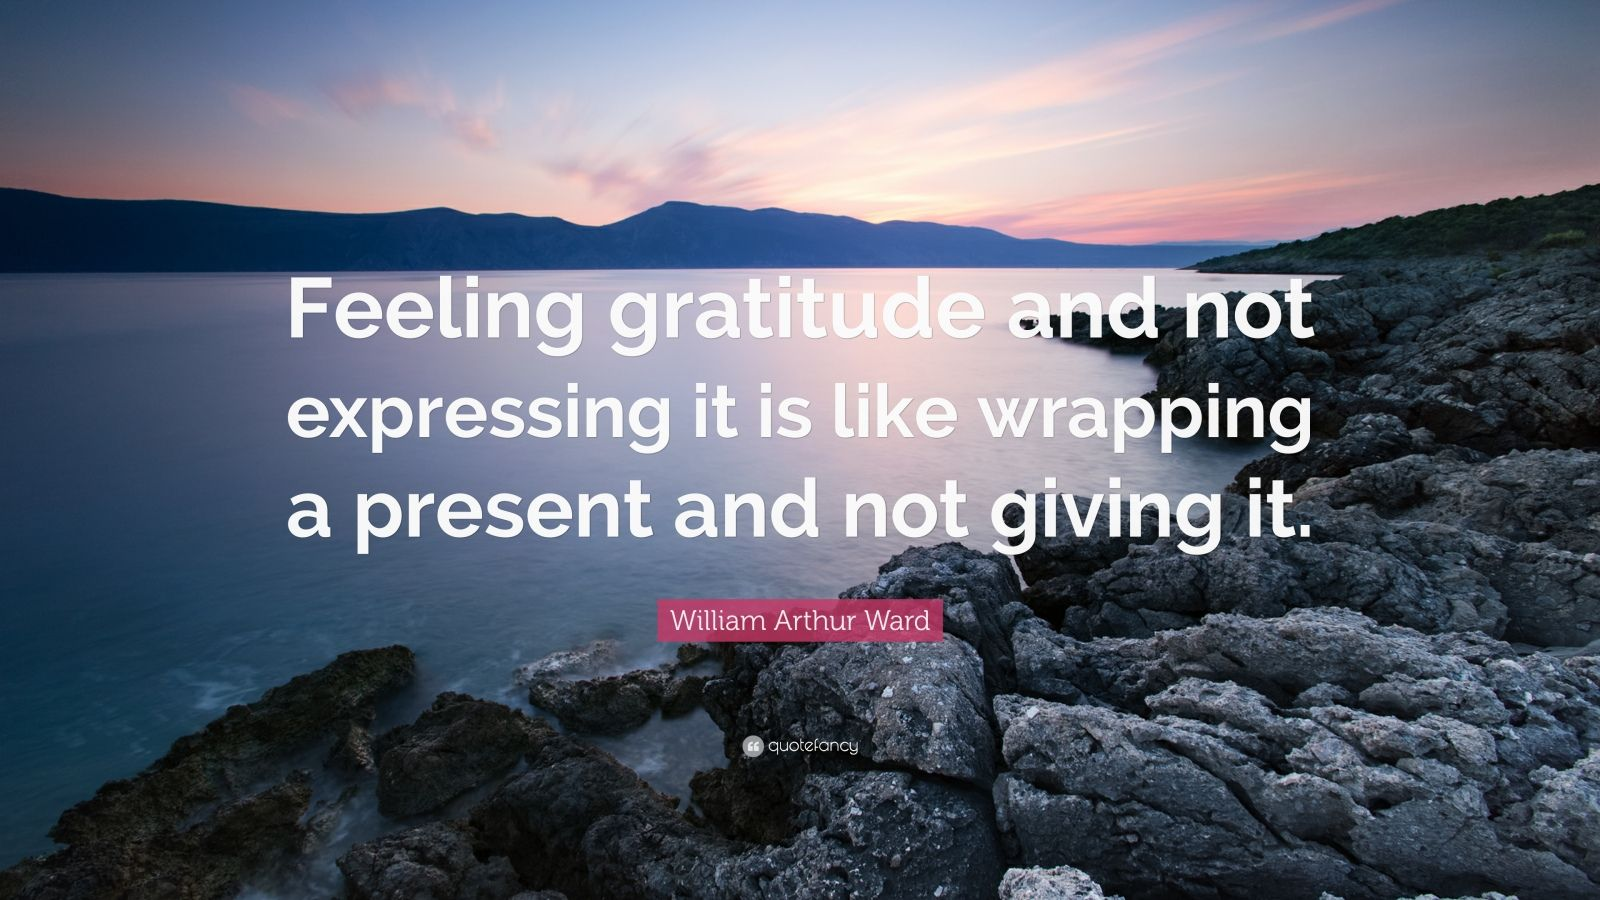 """William Arthur Ward Quote: """"Feeling gratitude and not expressing it is like wrapping a present and not giving it."""""""